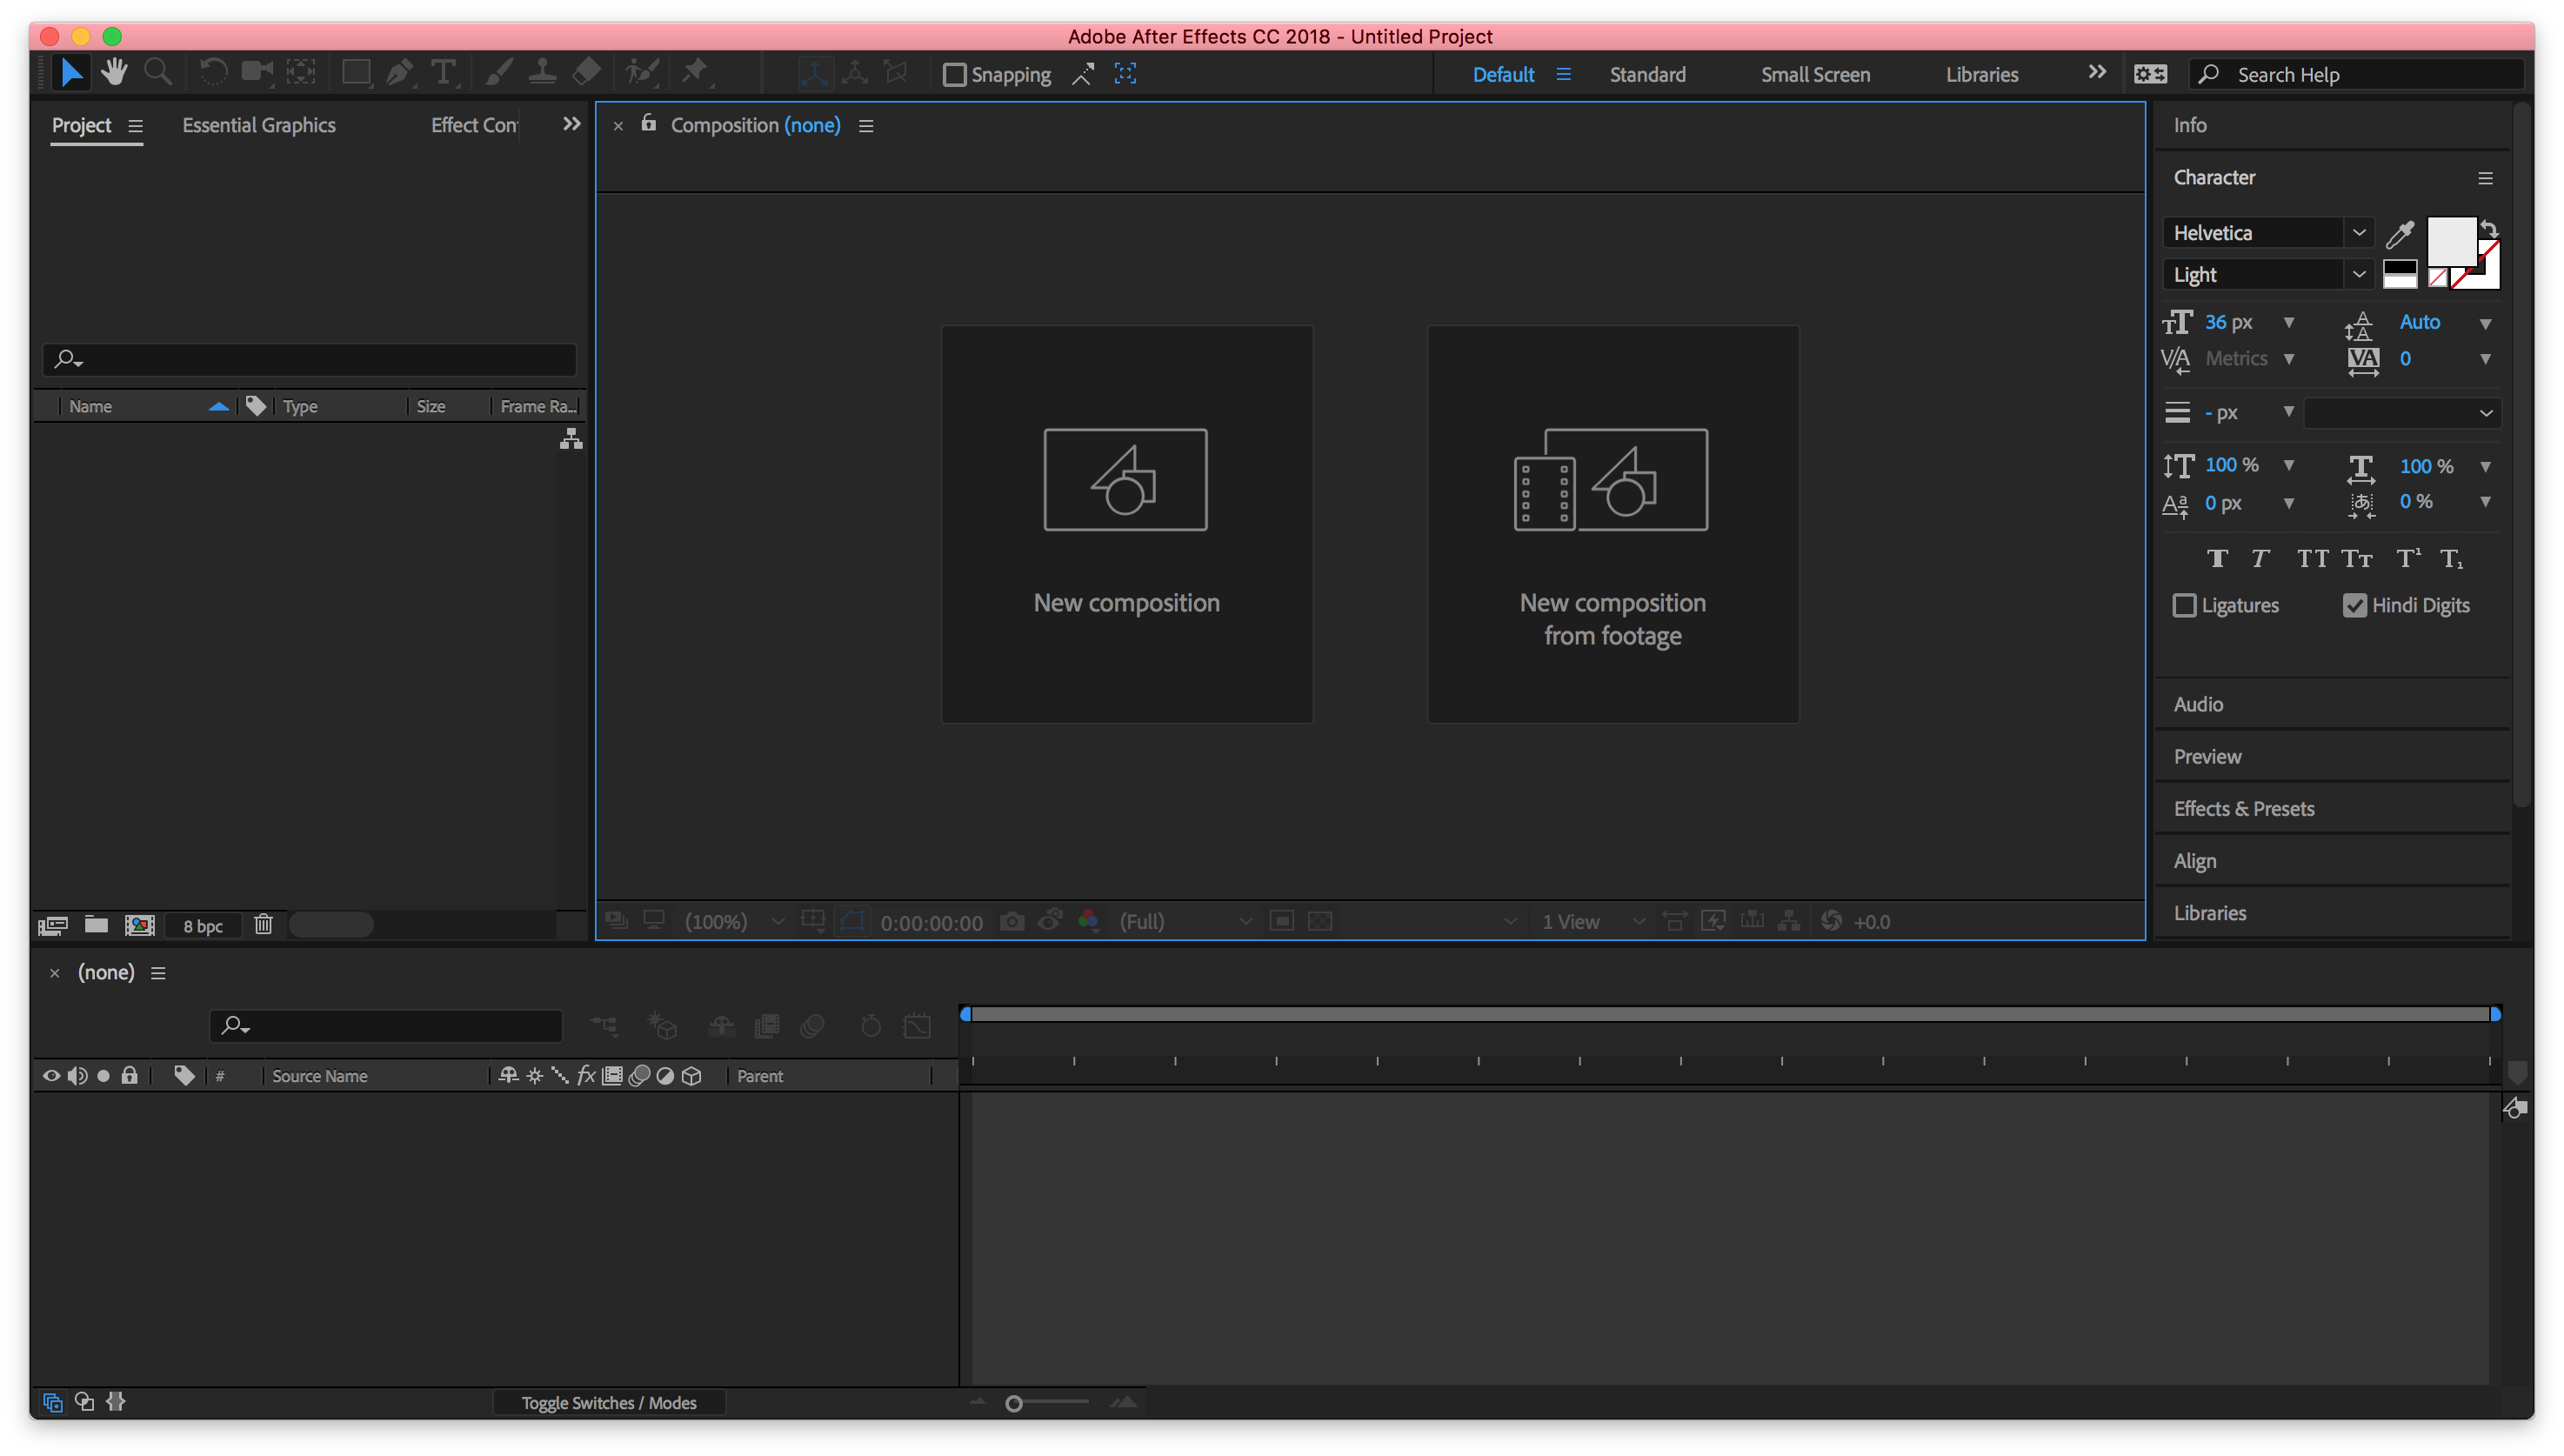 Adobe After Effects CC 2017 version 14.2.1 by Adobe ...